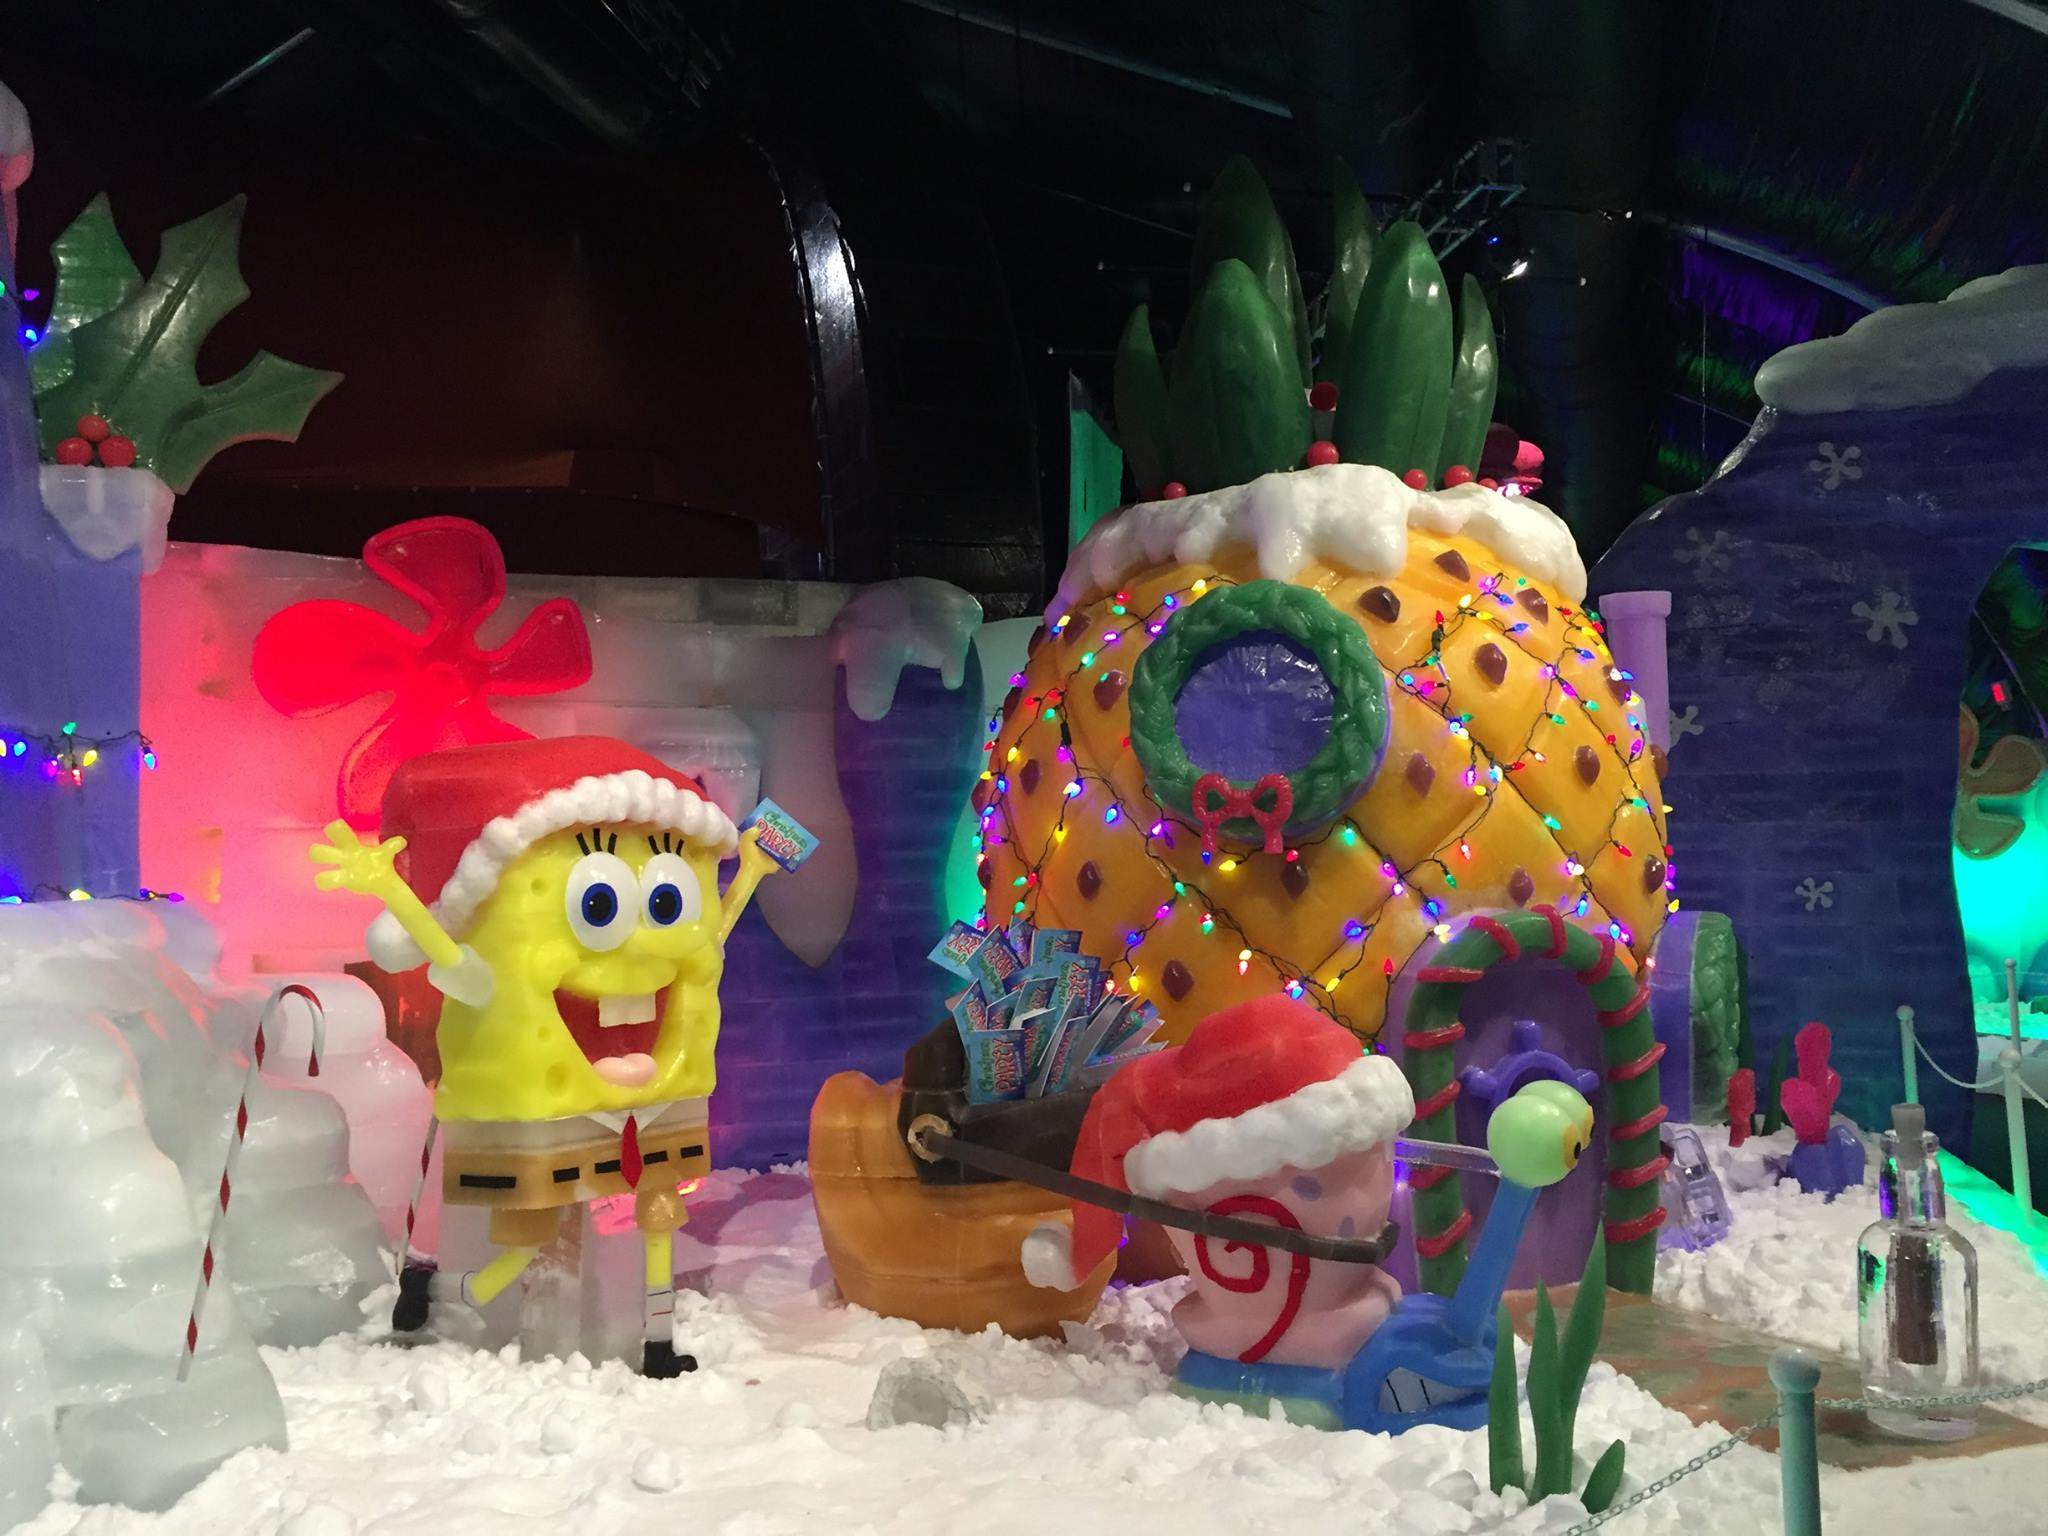 SpongeBob Iceland Christmas Pineapple